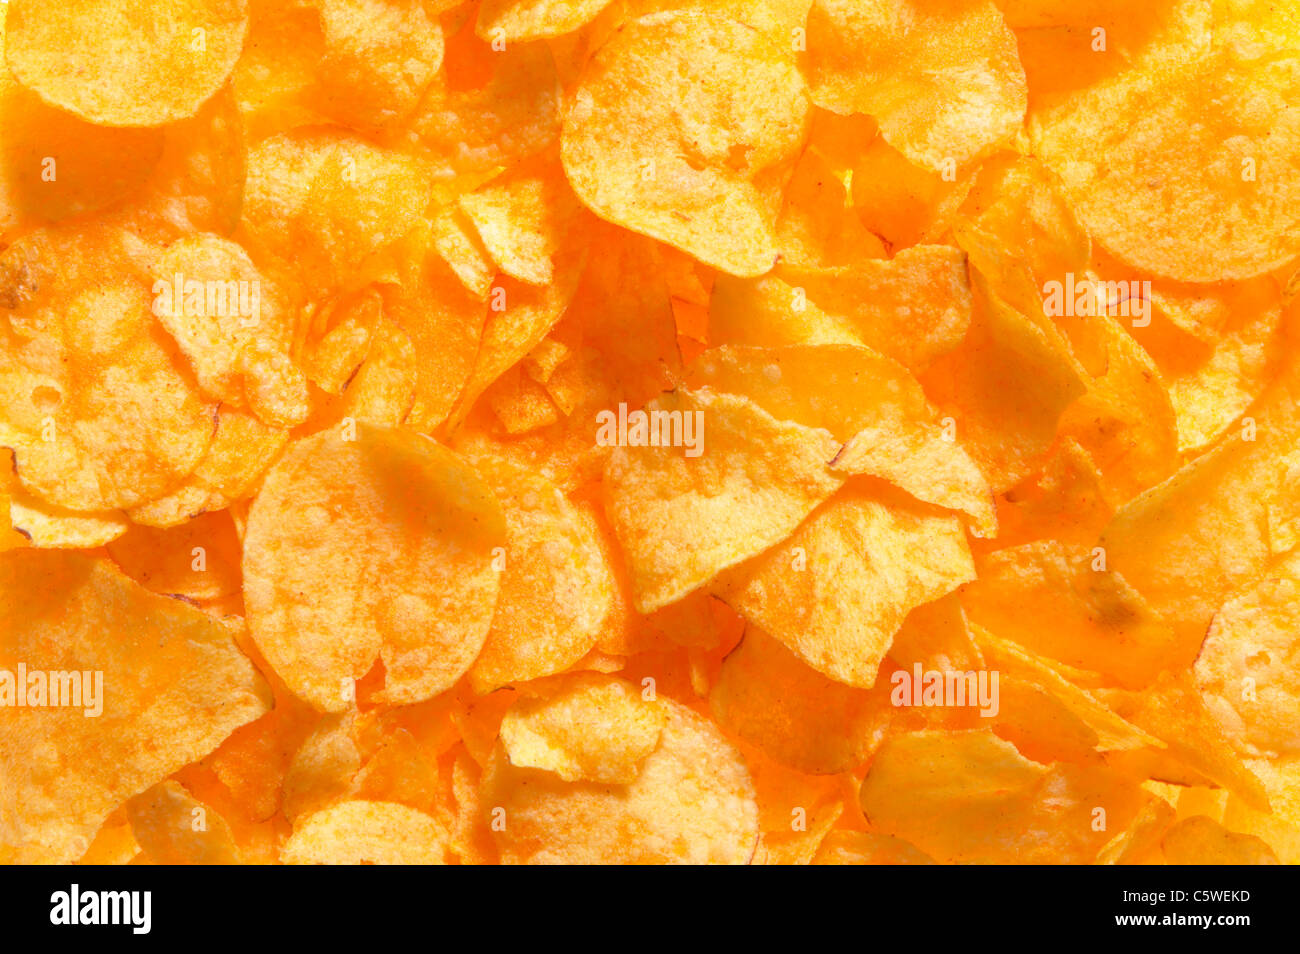 Potato Chips, full frame, close-up Foto Stock